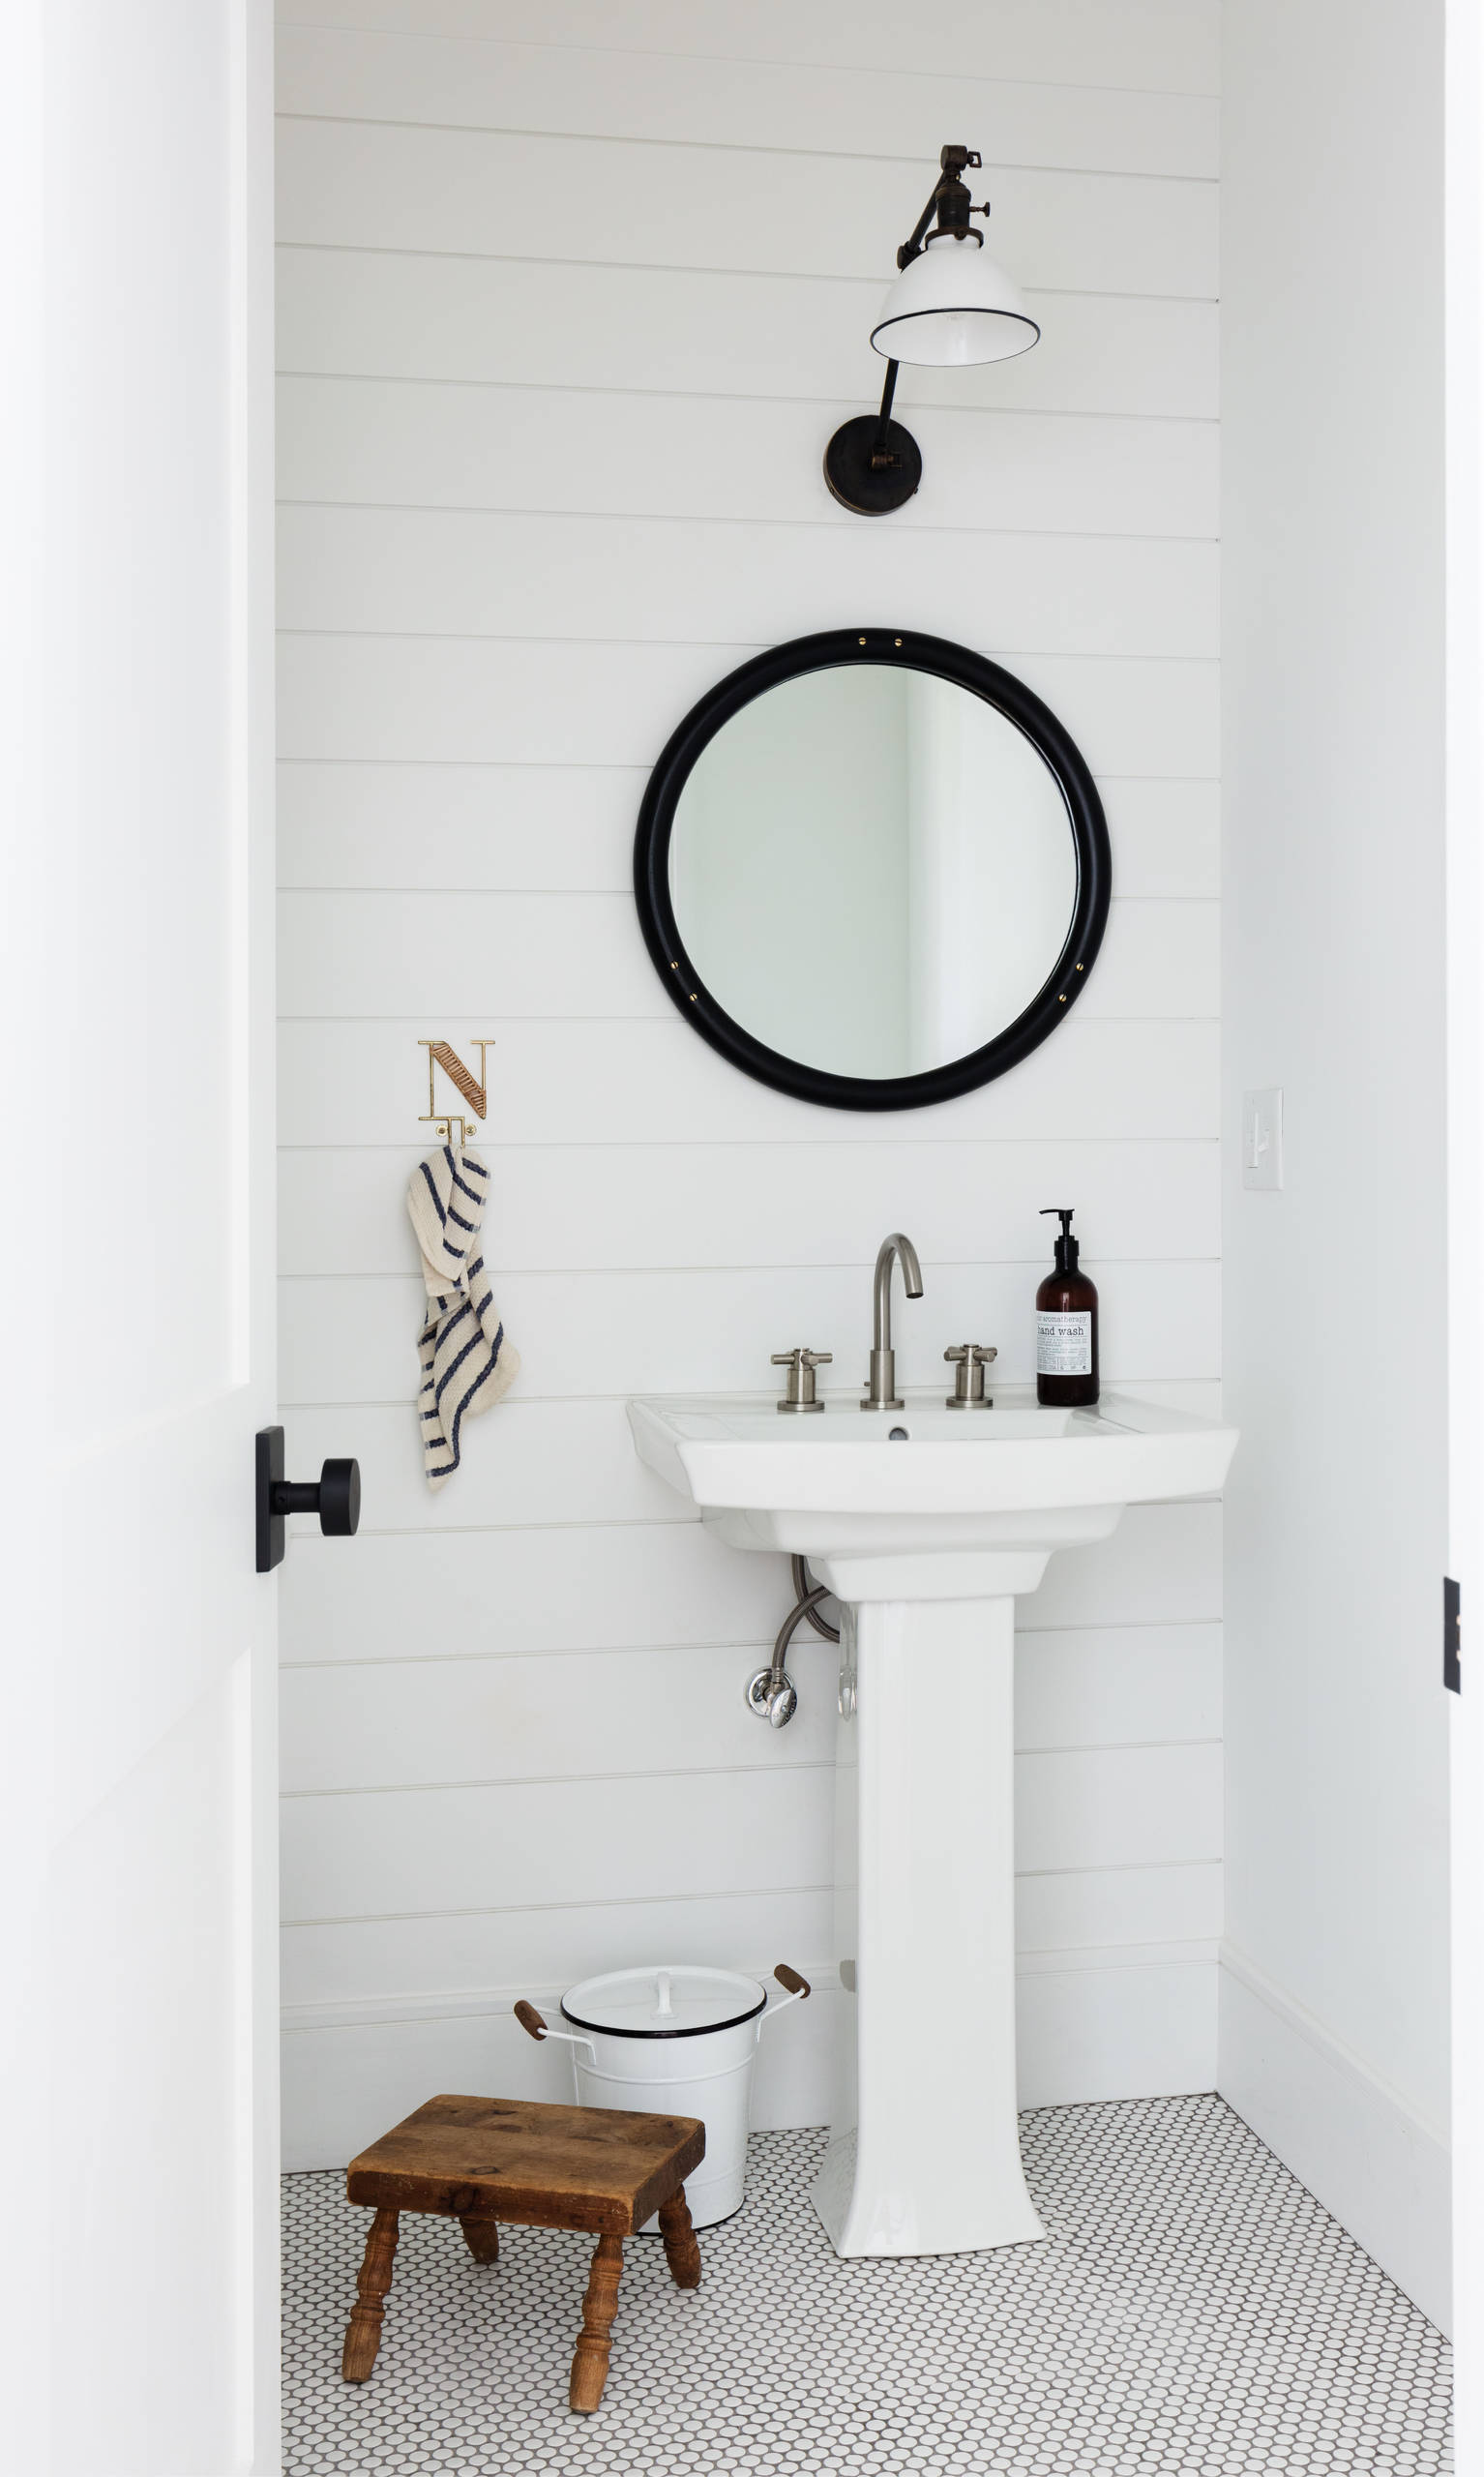 75 Beautiful Powder Room With A Pedestal Sink Pictures Ideas September 2020 Houzz